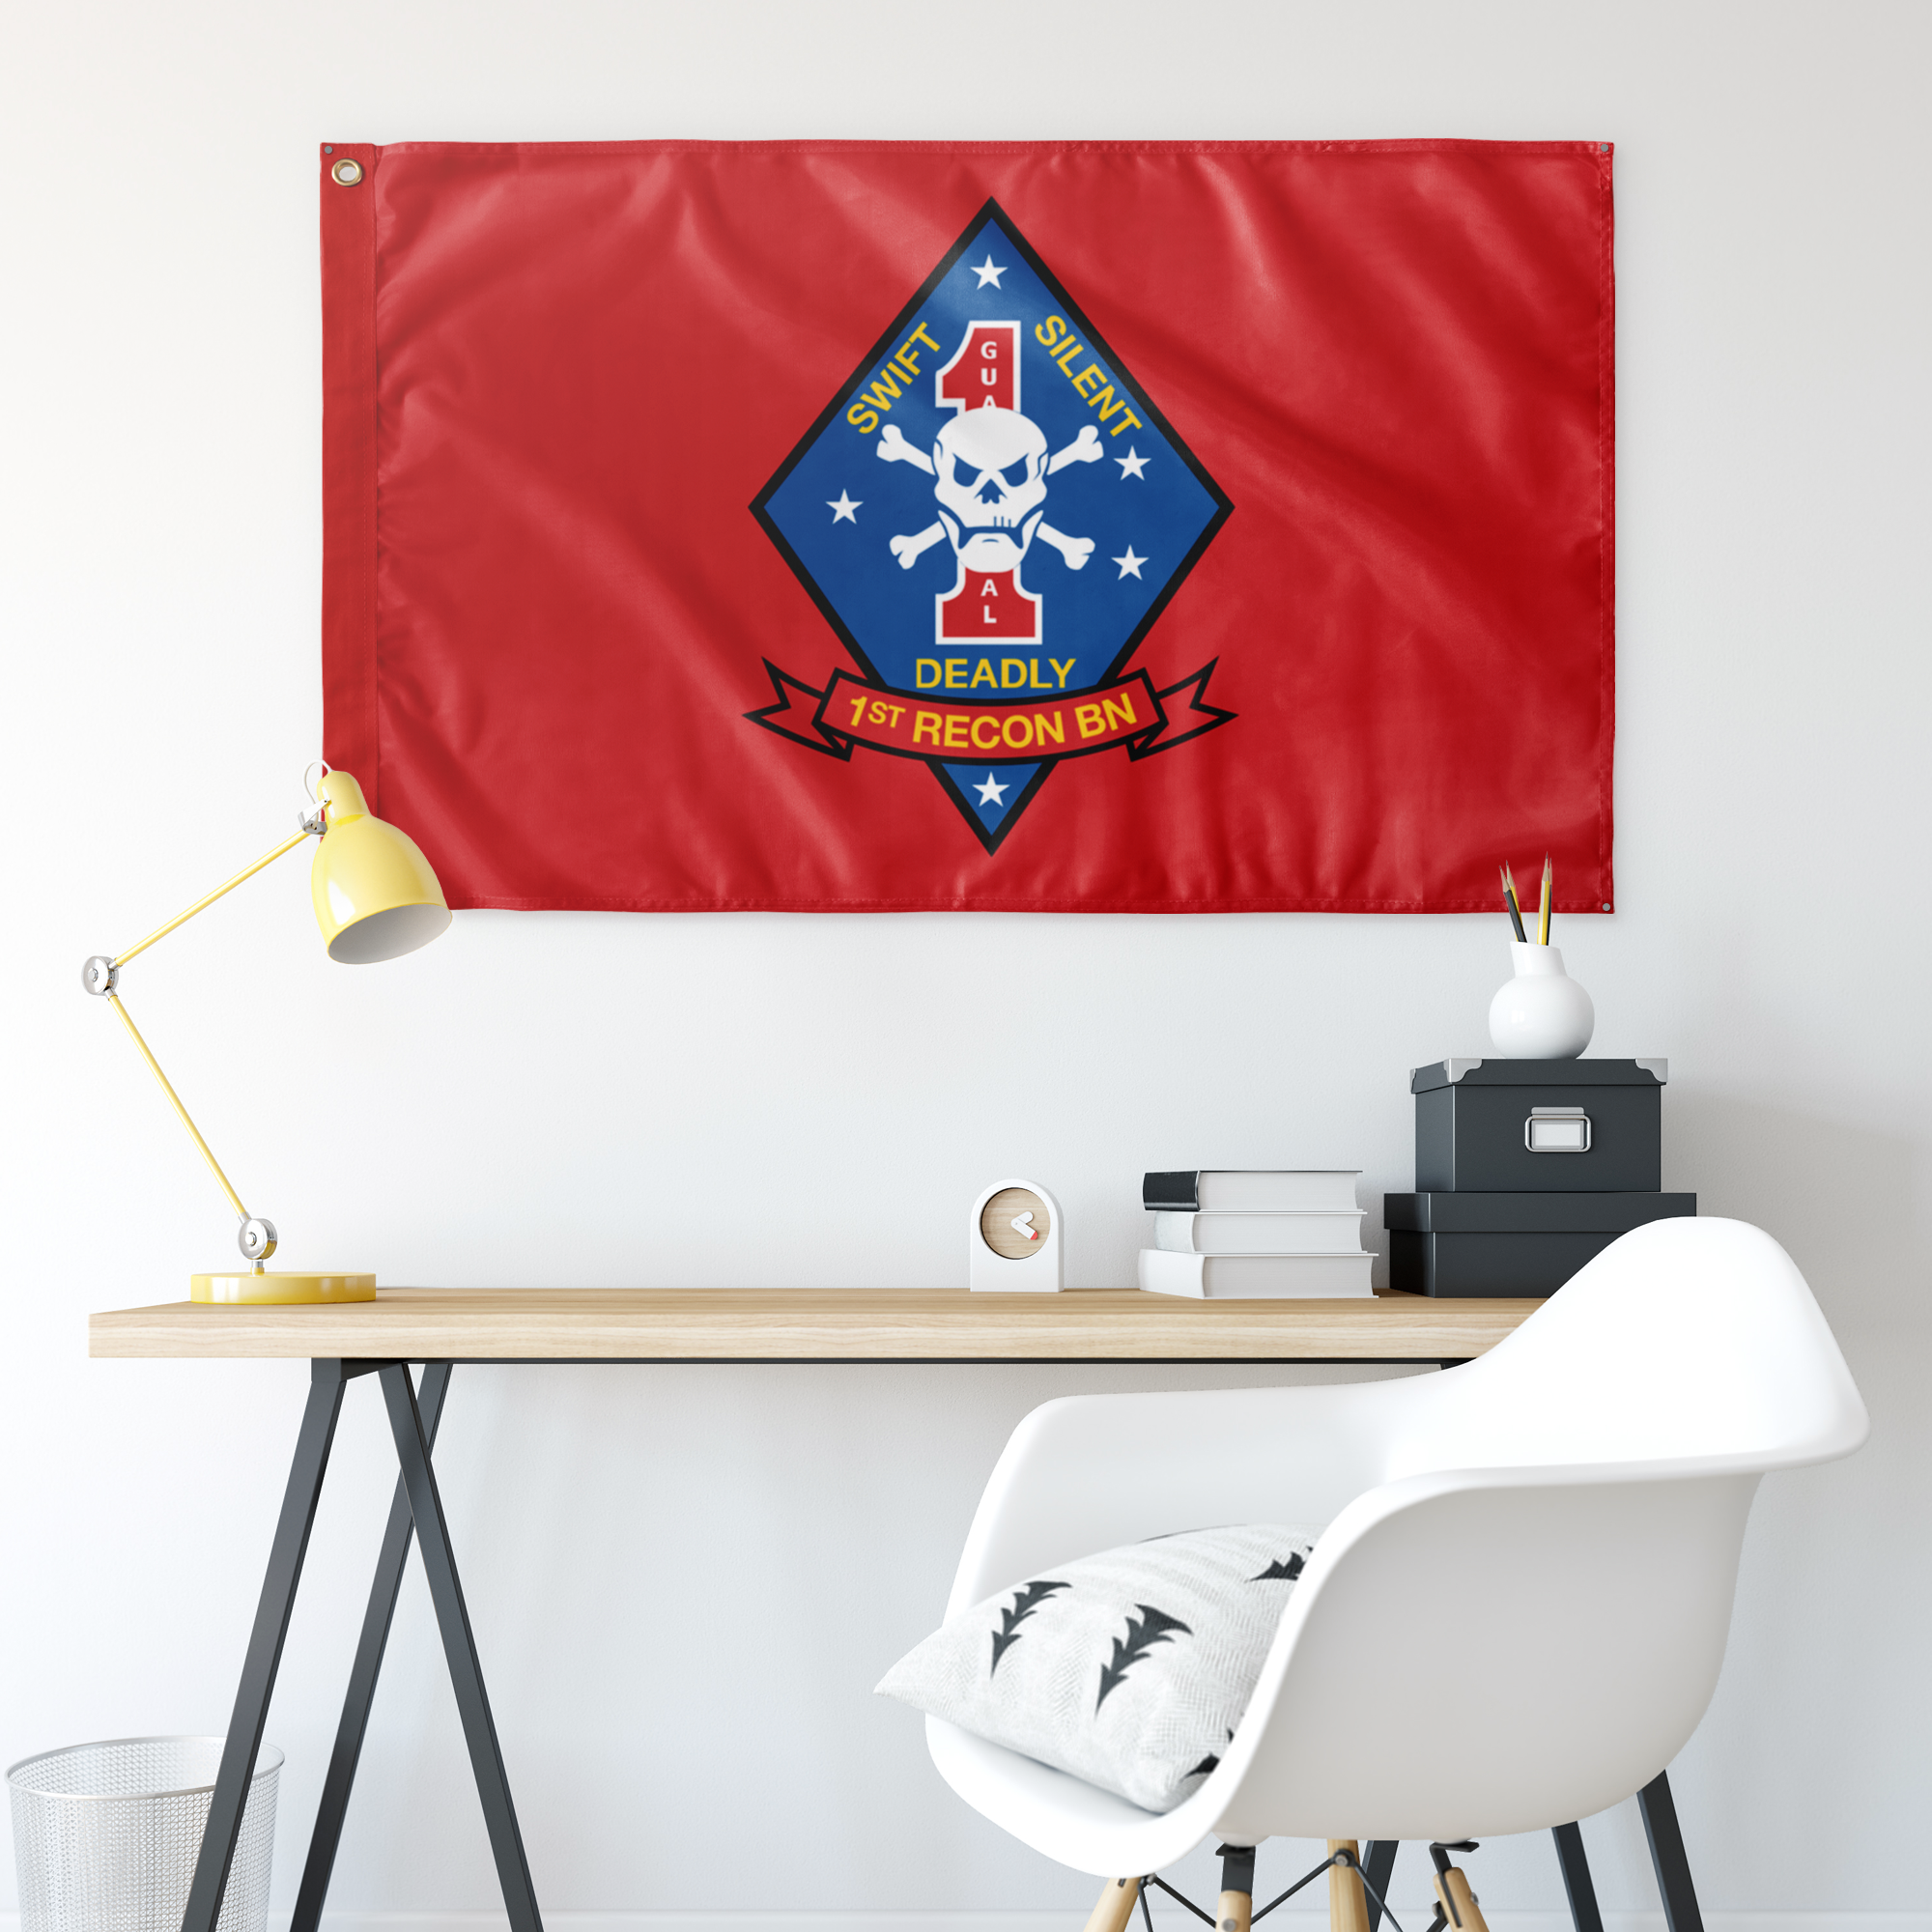 2ND RECON BN RED 3' X 5' INDOOR FLAG